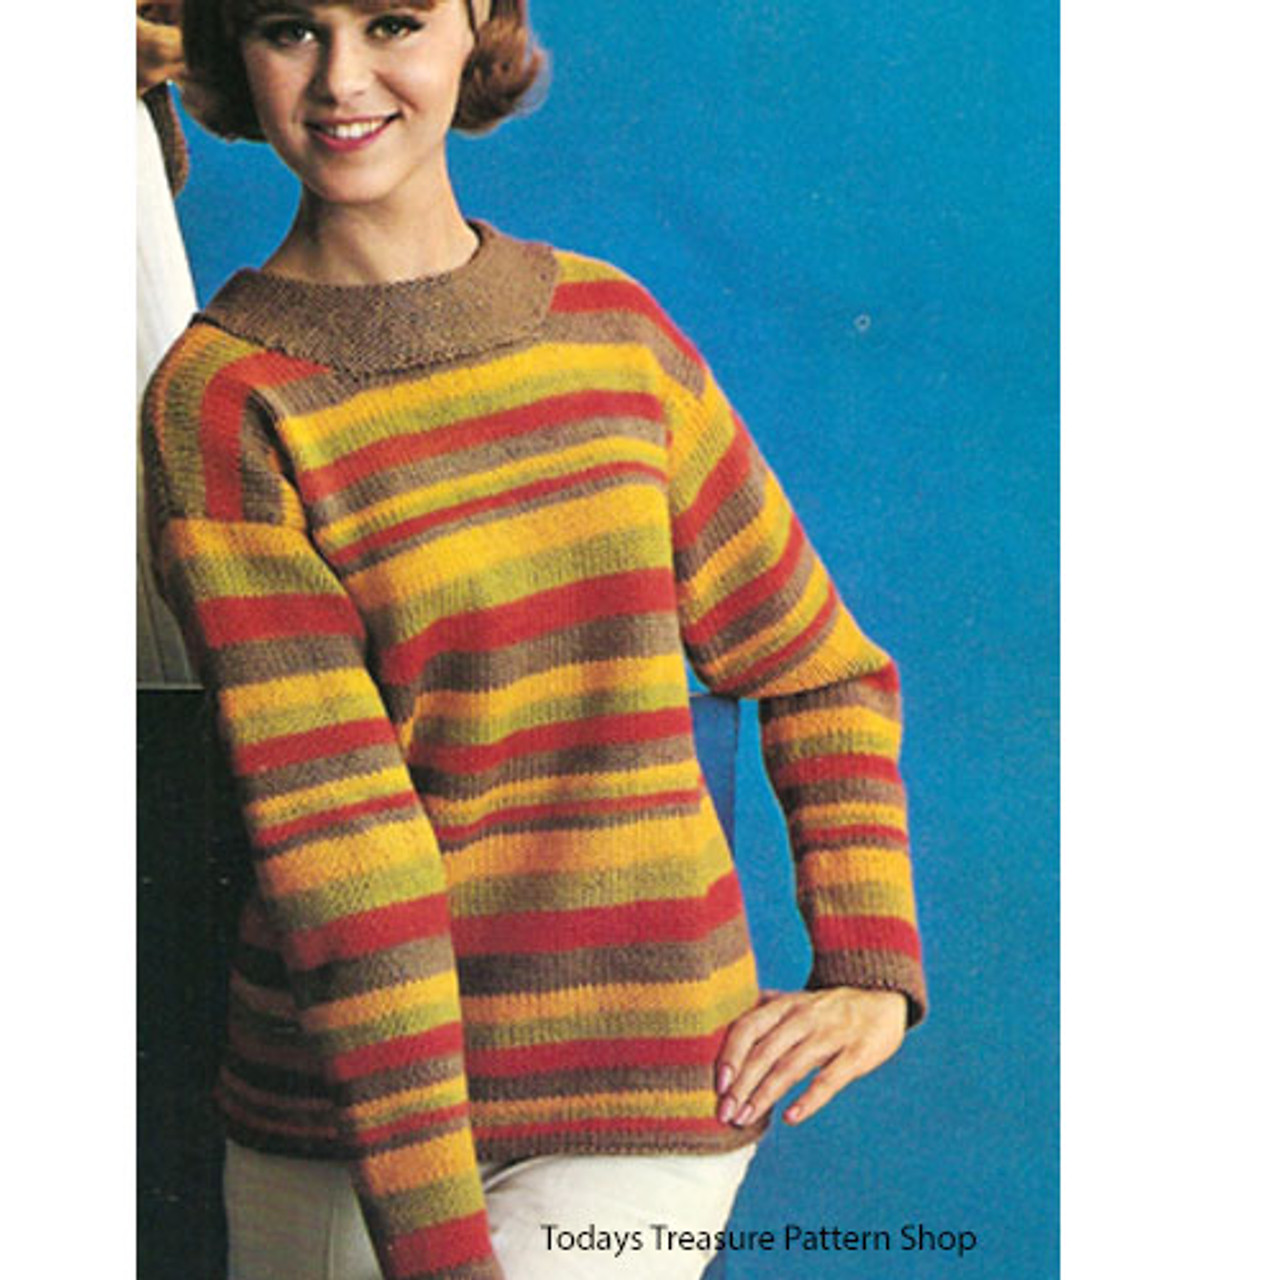 Easy Knitted Pullover Pattern in Dawn Knitting Worsted